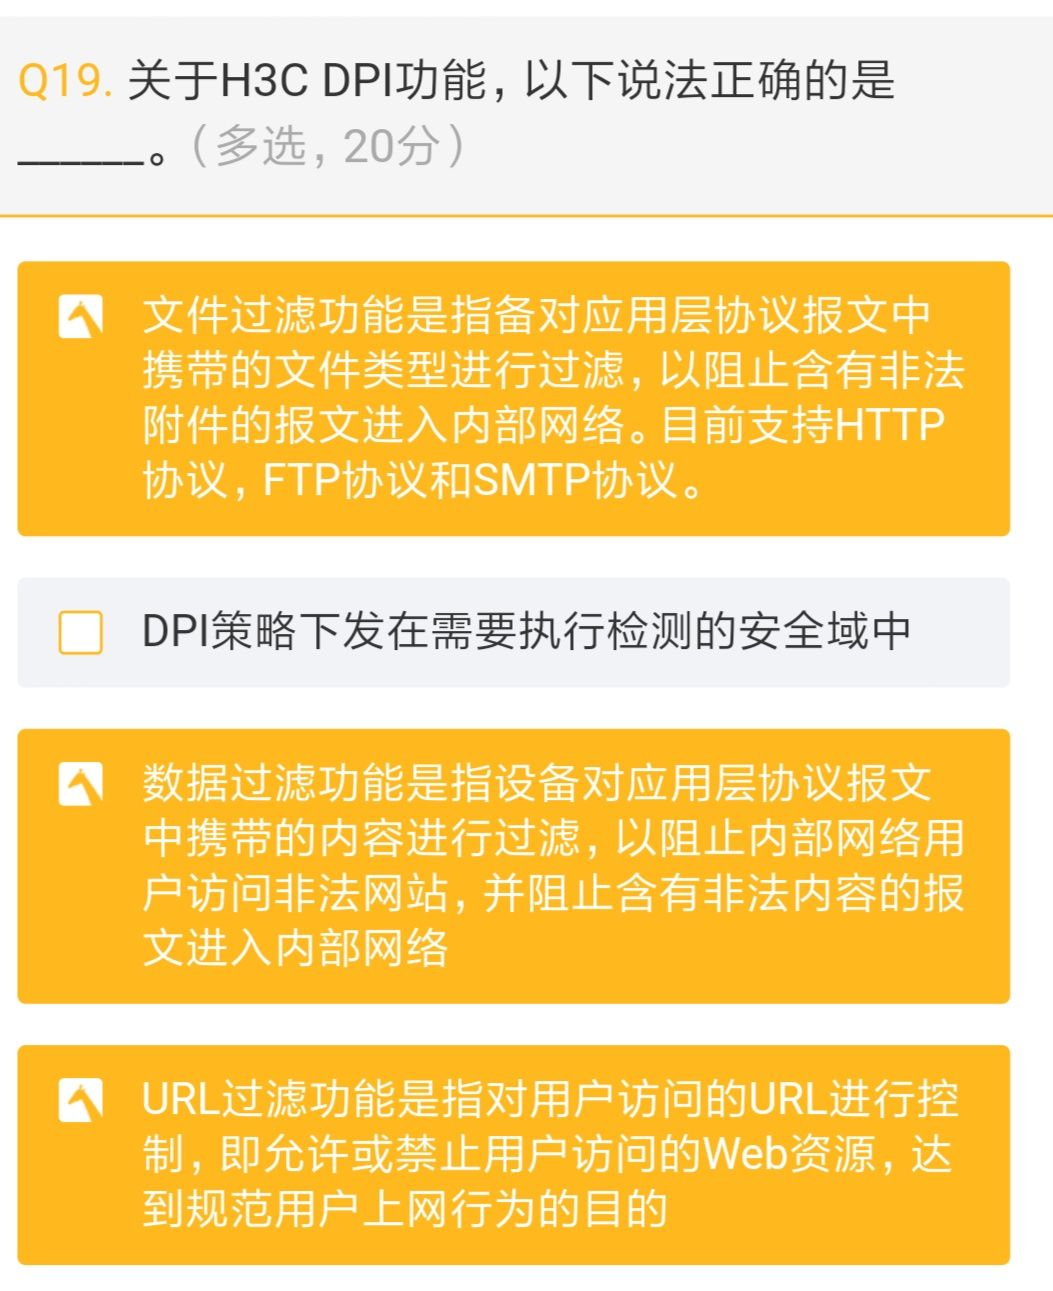 Screenshot_2019-08-05-22-35-34-471_com.tencent.mm.png